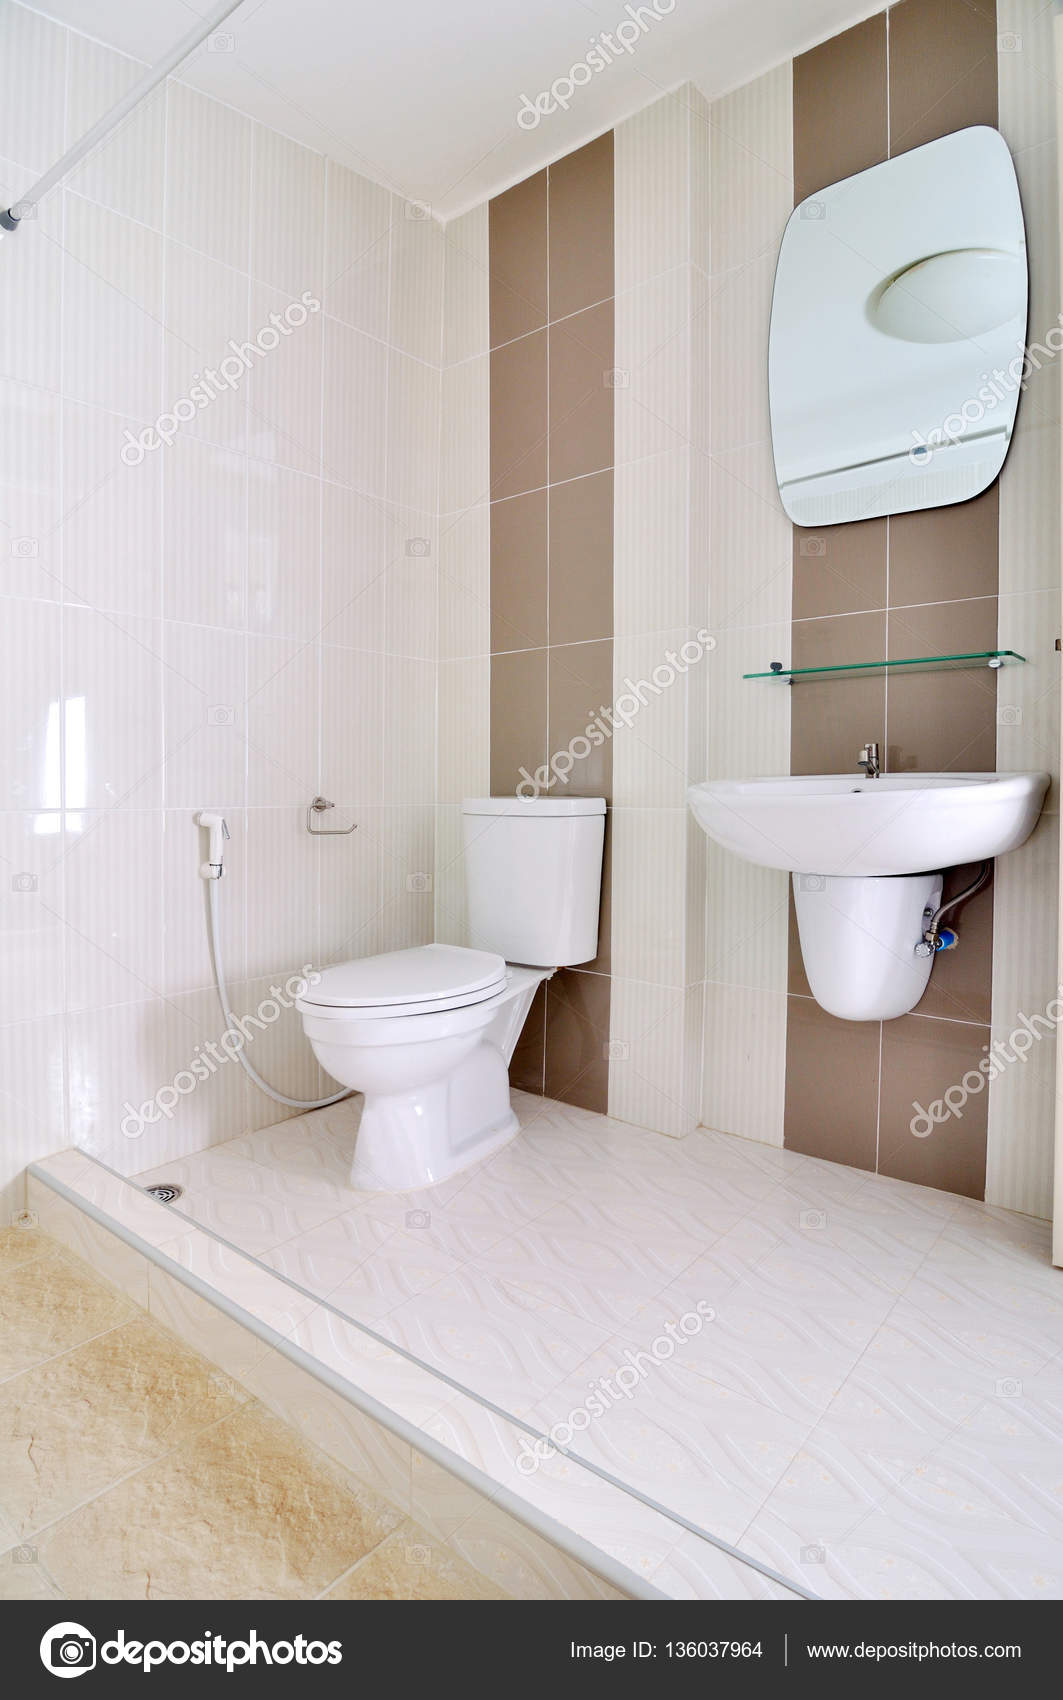 Nice small simple bathroom with sink and toilet stock for Simple small bathroom